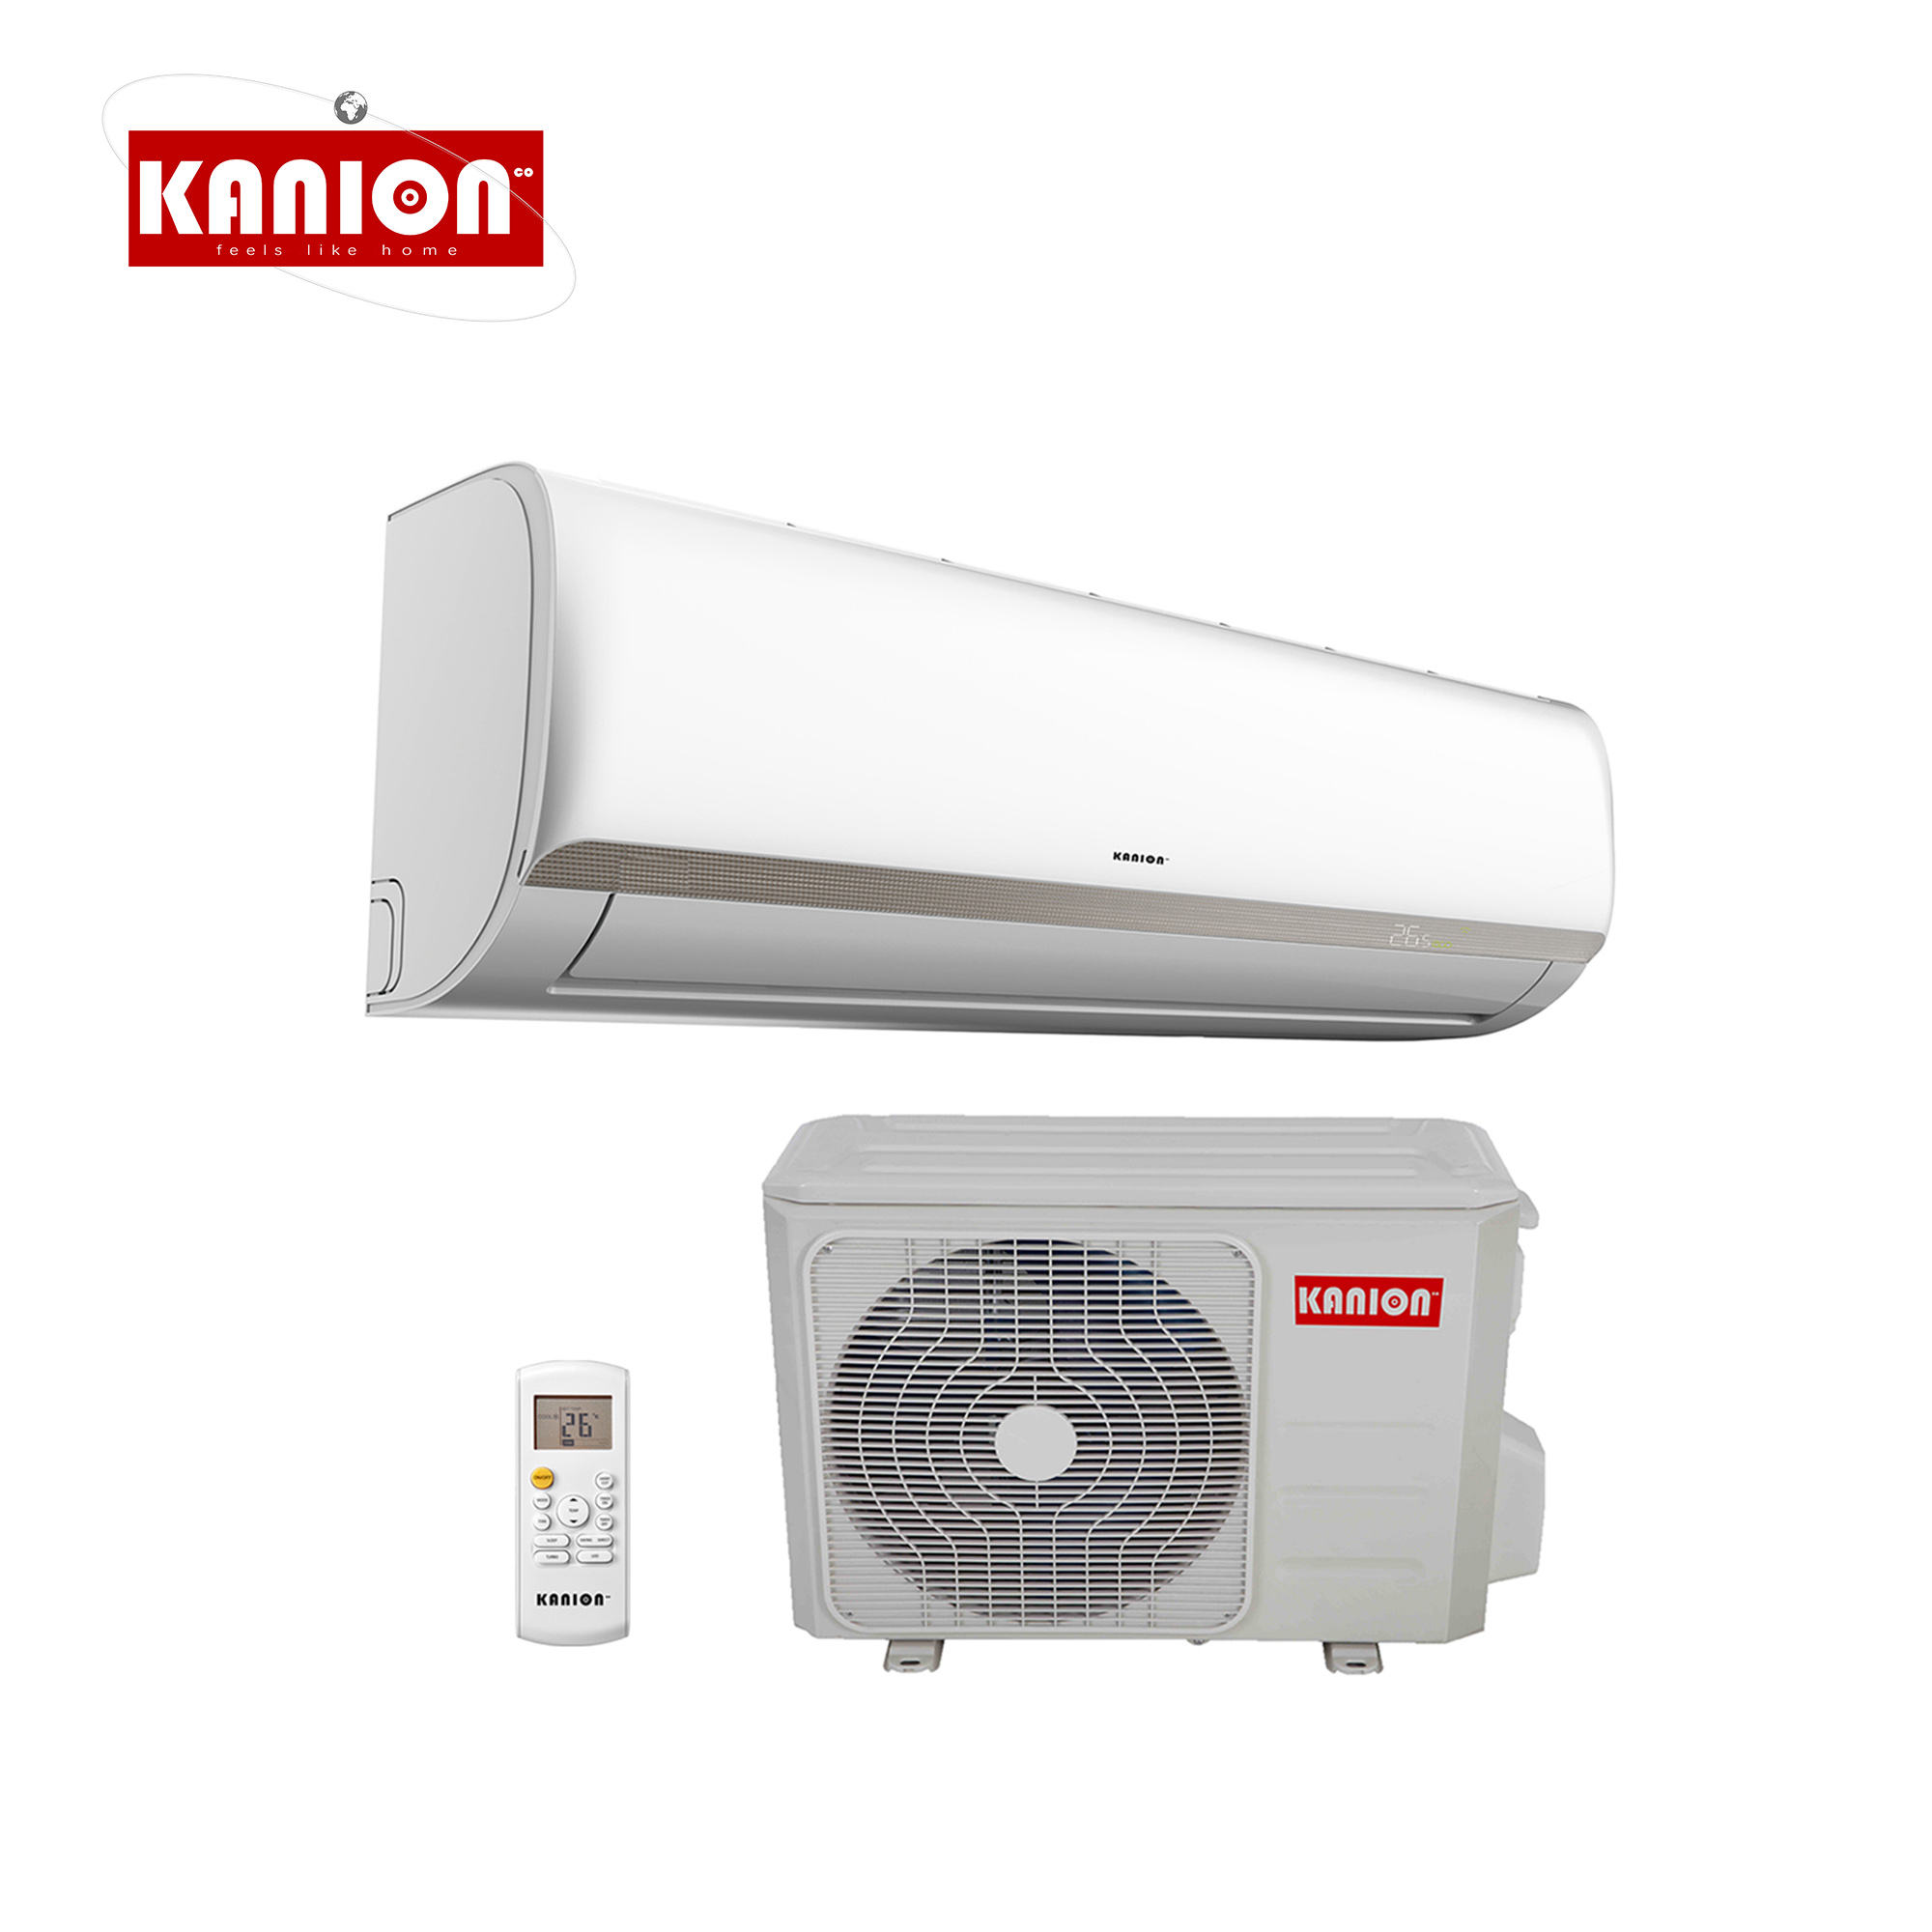 Kanionco Inverter 3 star 12000 btu air conditioners